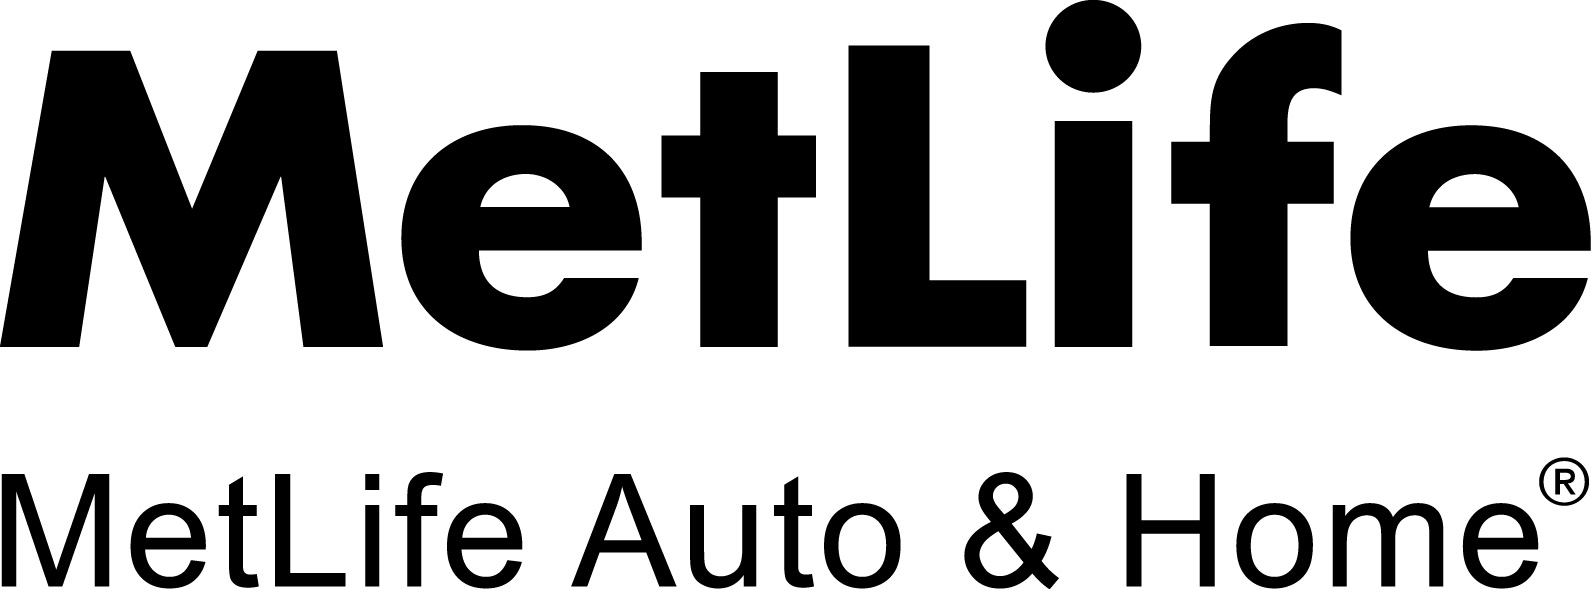 Metlife Life Insurance Quotes Metlife Auto & Home  Dekok Insurance Group Inc.